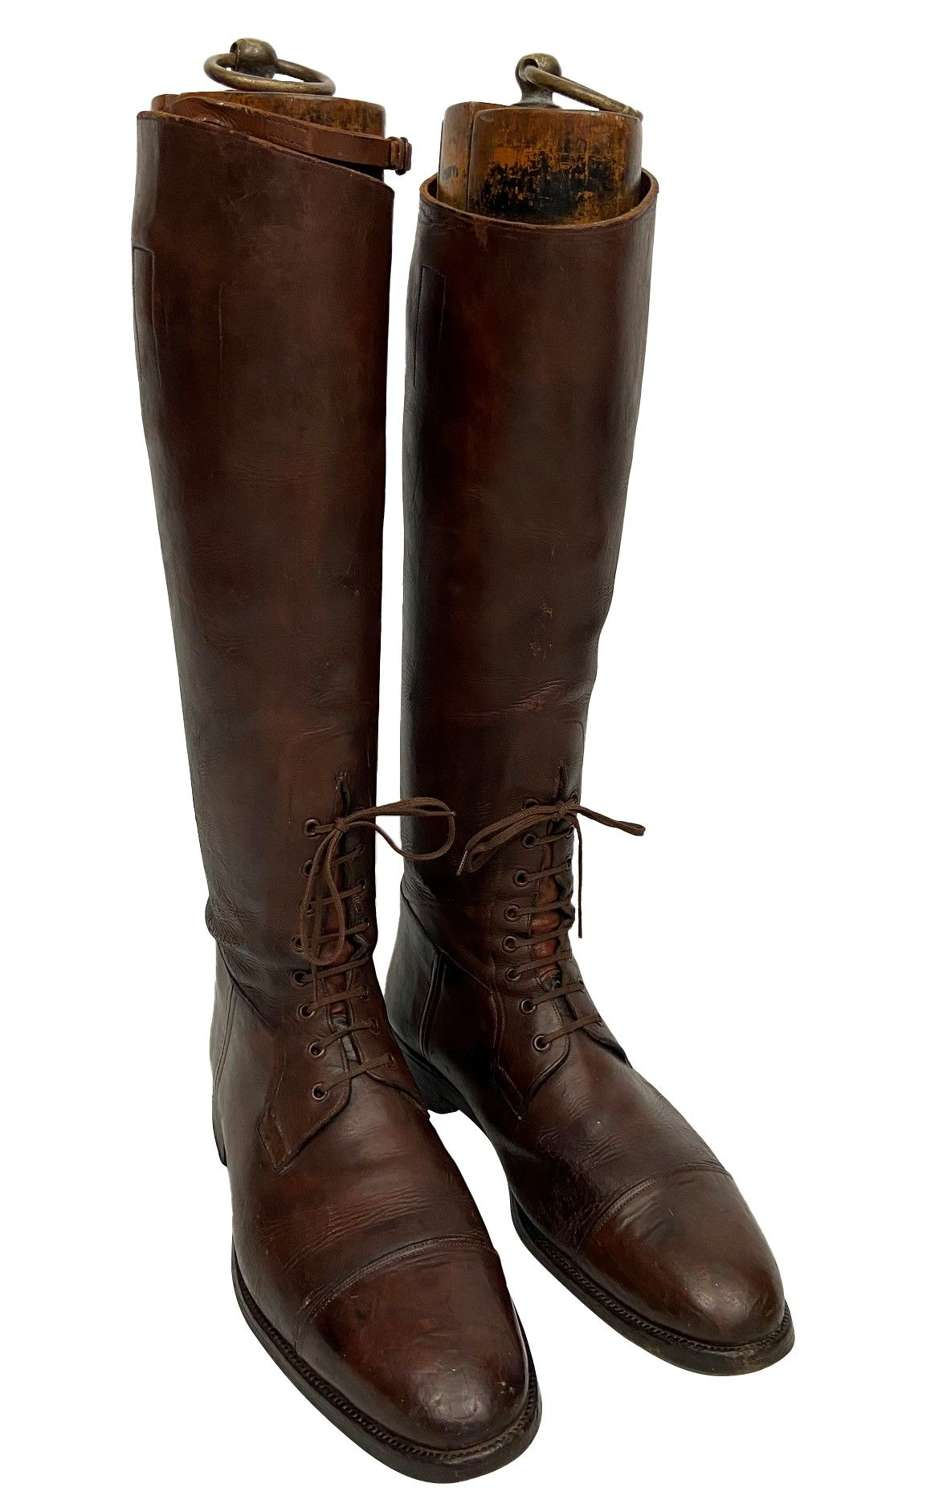 Original British Army Officer Brown Leather Field Boots - Welsh Guards